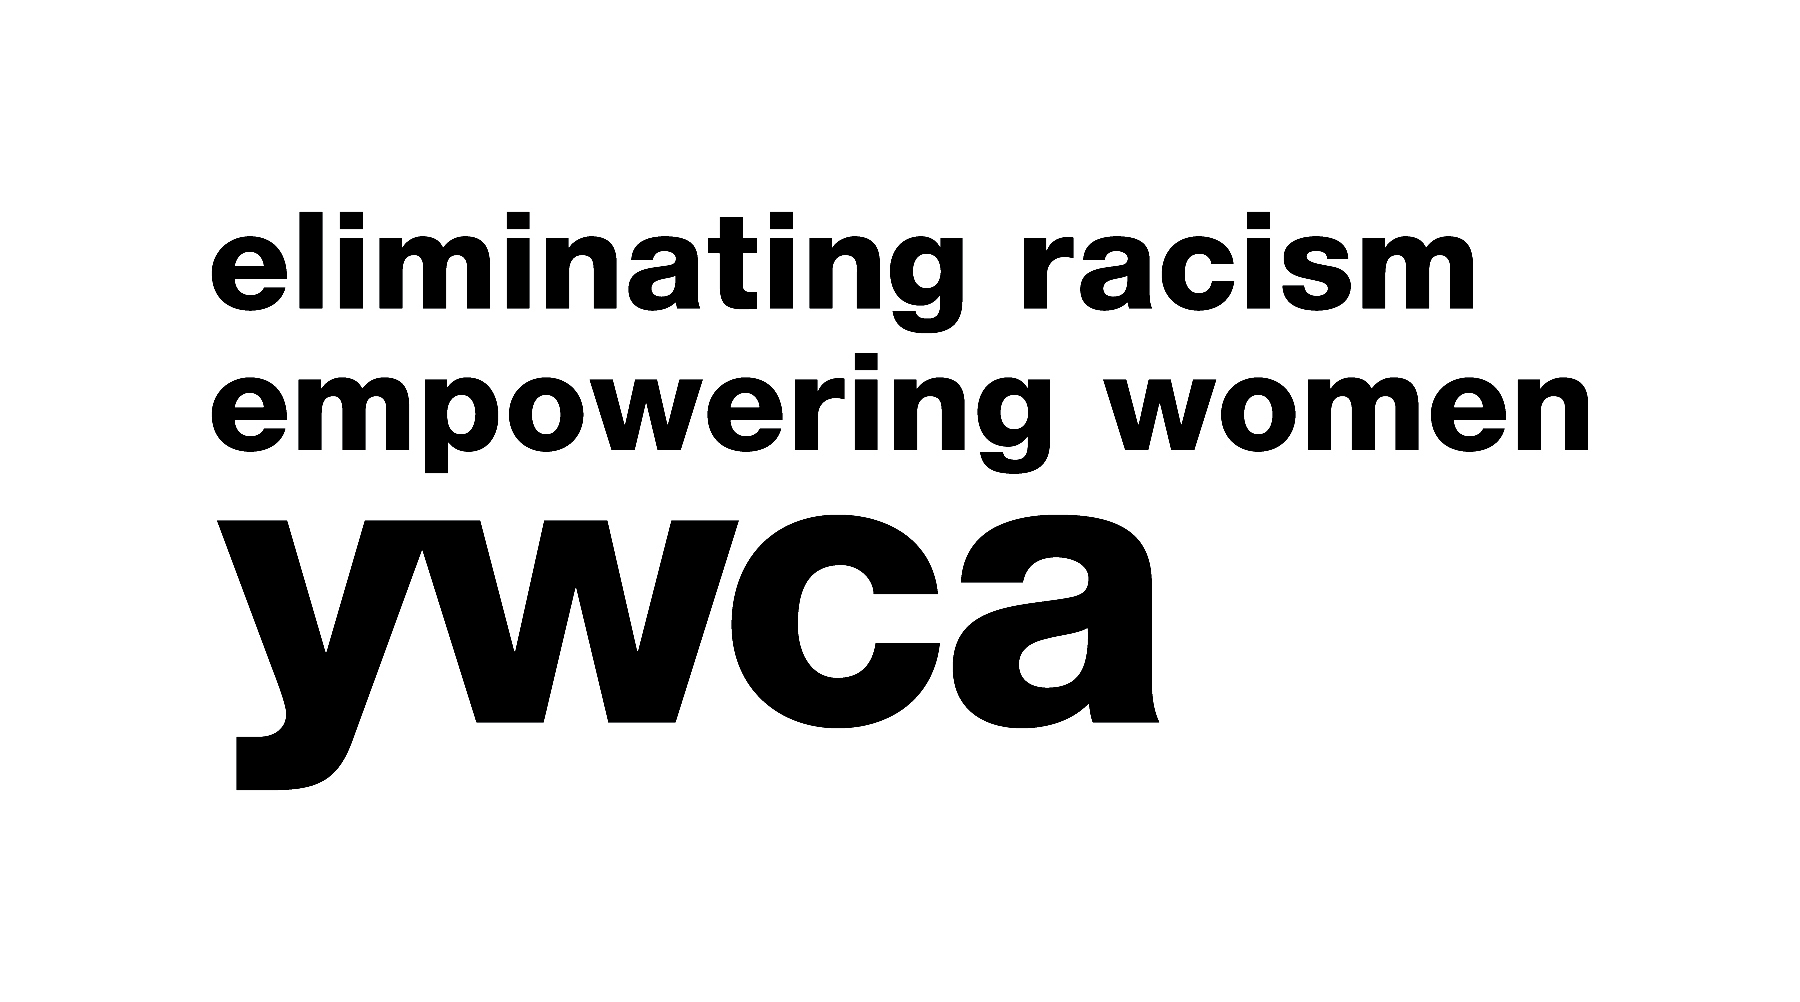 YWCA_Alt_black.jpg